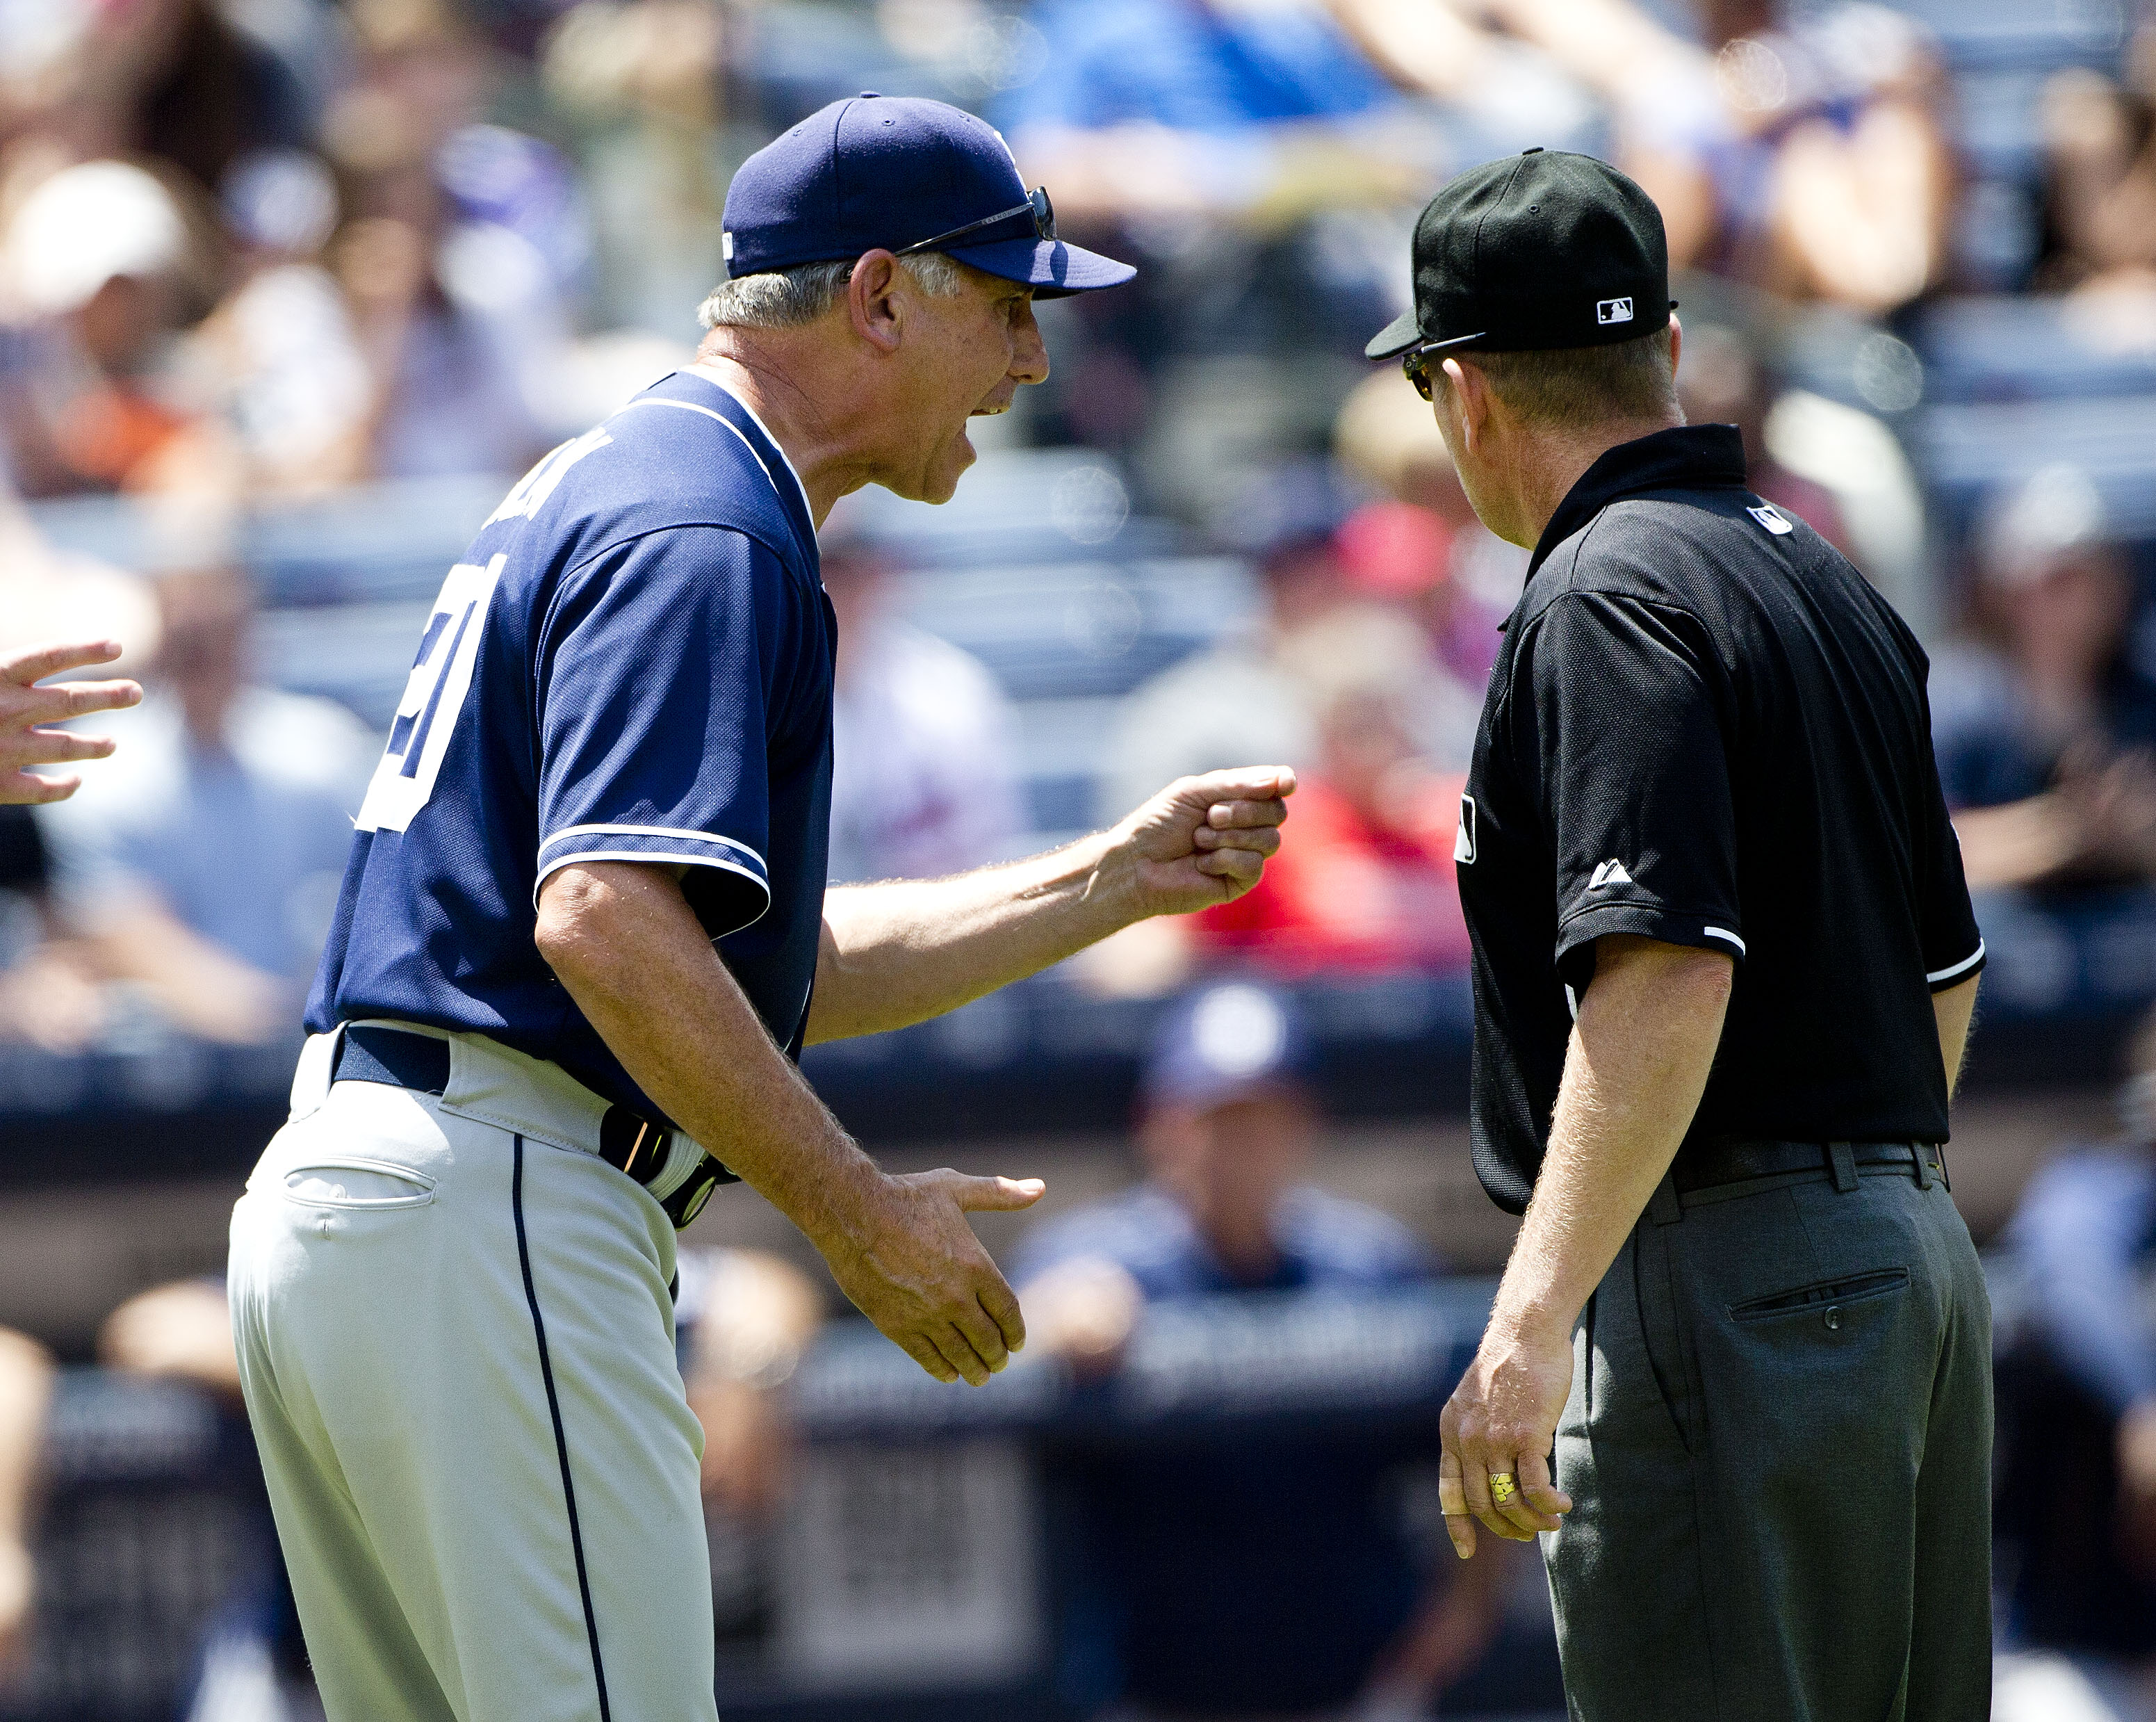 San Diego Padres manager Bud Black, left, argues a call with an umpire before being ejected in the seventh inning of a baseball game against the Atlanta Braves, Thursday, June 11, 2015, in Atlanta. San Diego won 6-4 in 11 innings. (AP Photo/John Bazemore)